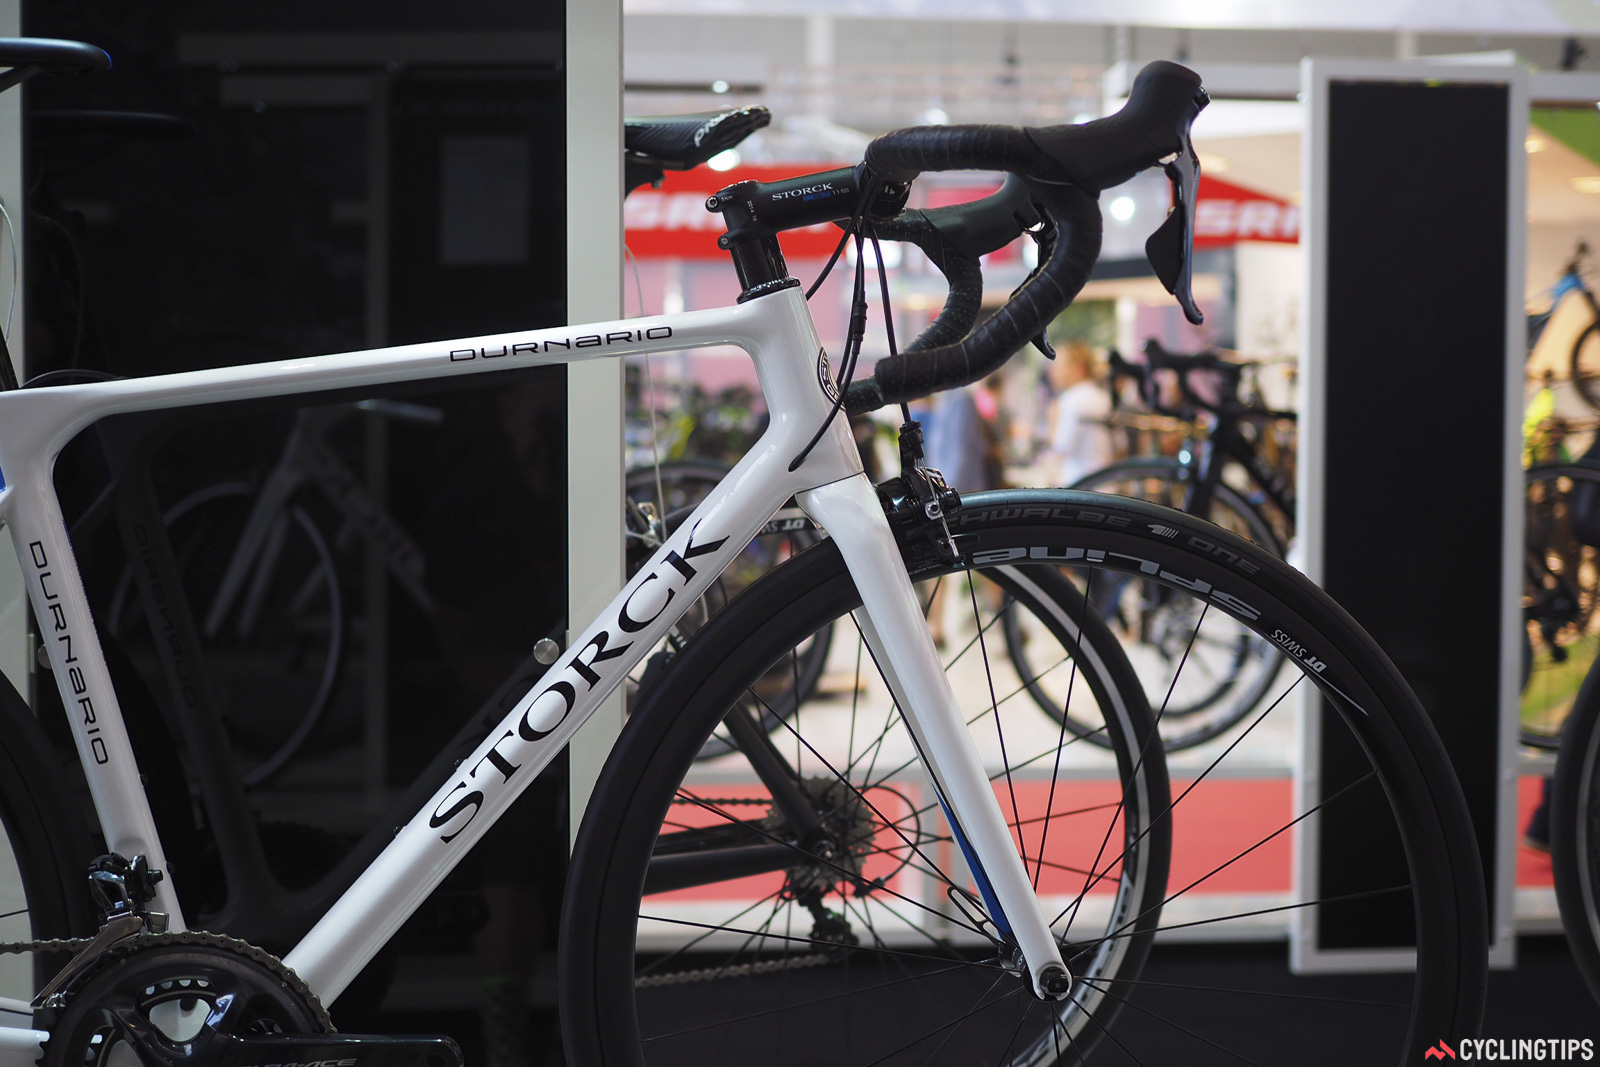 The top tube of the new Storck Durnario is notably flat, and the fork blades are slimmed down as well. Both should help the frame flex a bit over bumps. Photo: James Huang.